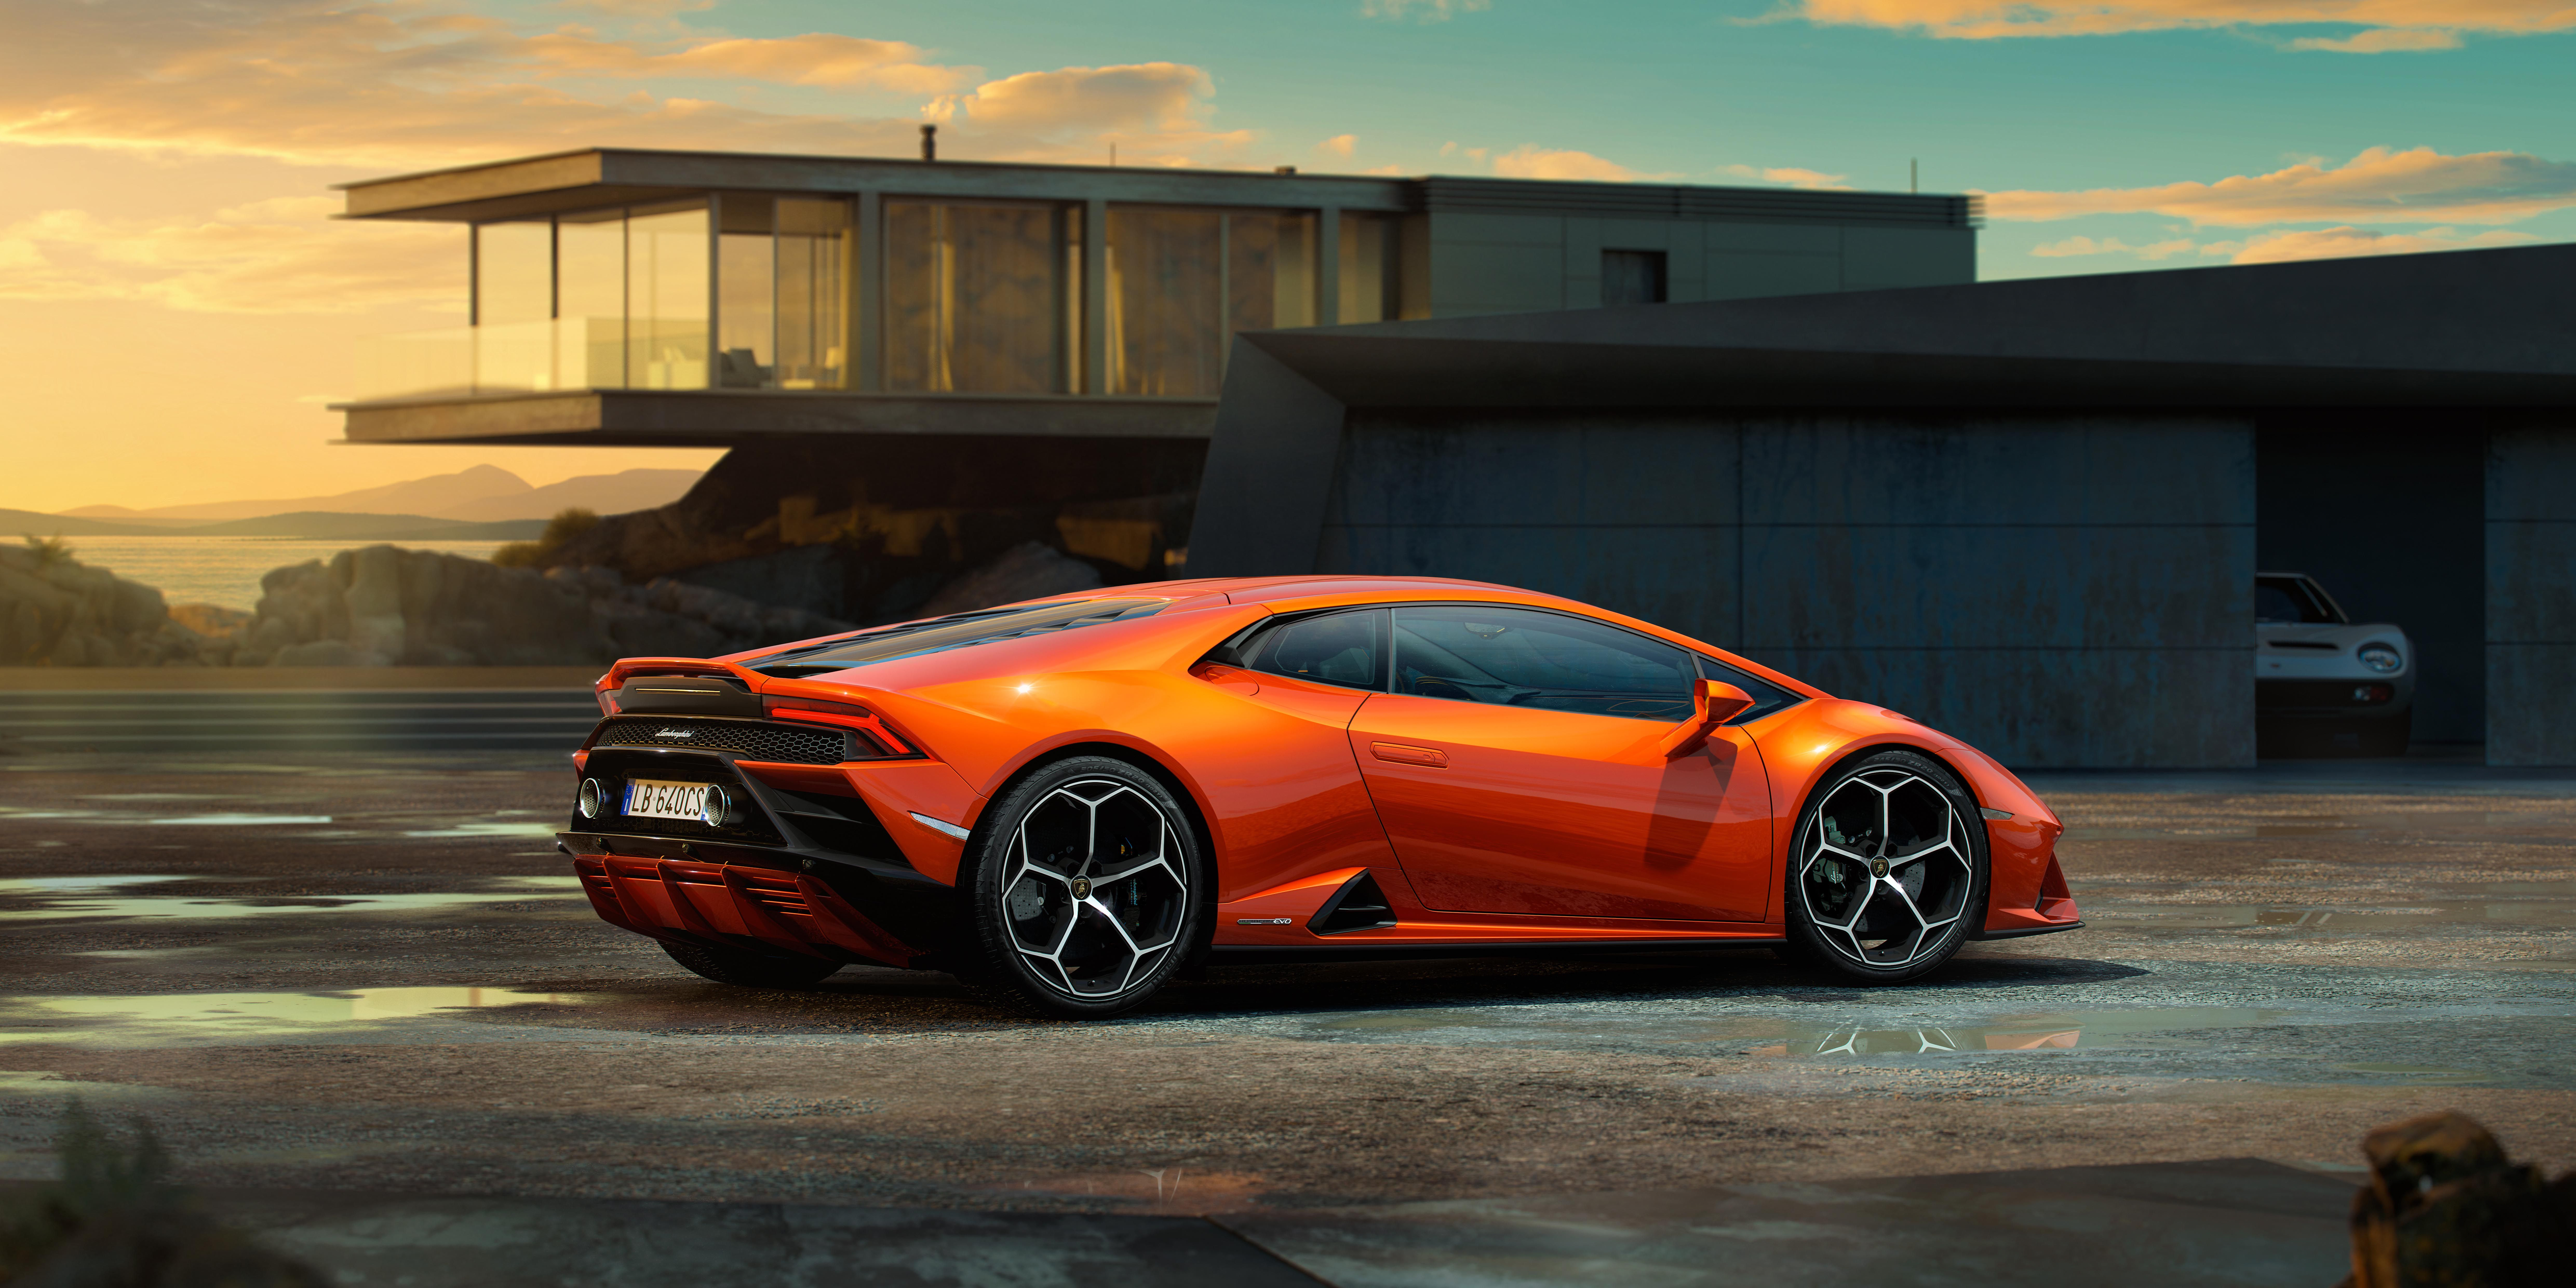 lamborghini huracan evo 2019 10k hd cars 4k wallpapers images backgrounds photos and pictures. Black Bedroom Furniture Sets. Home Design Ideas